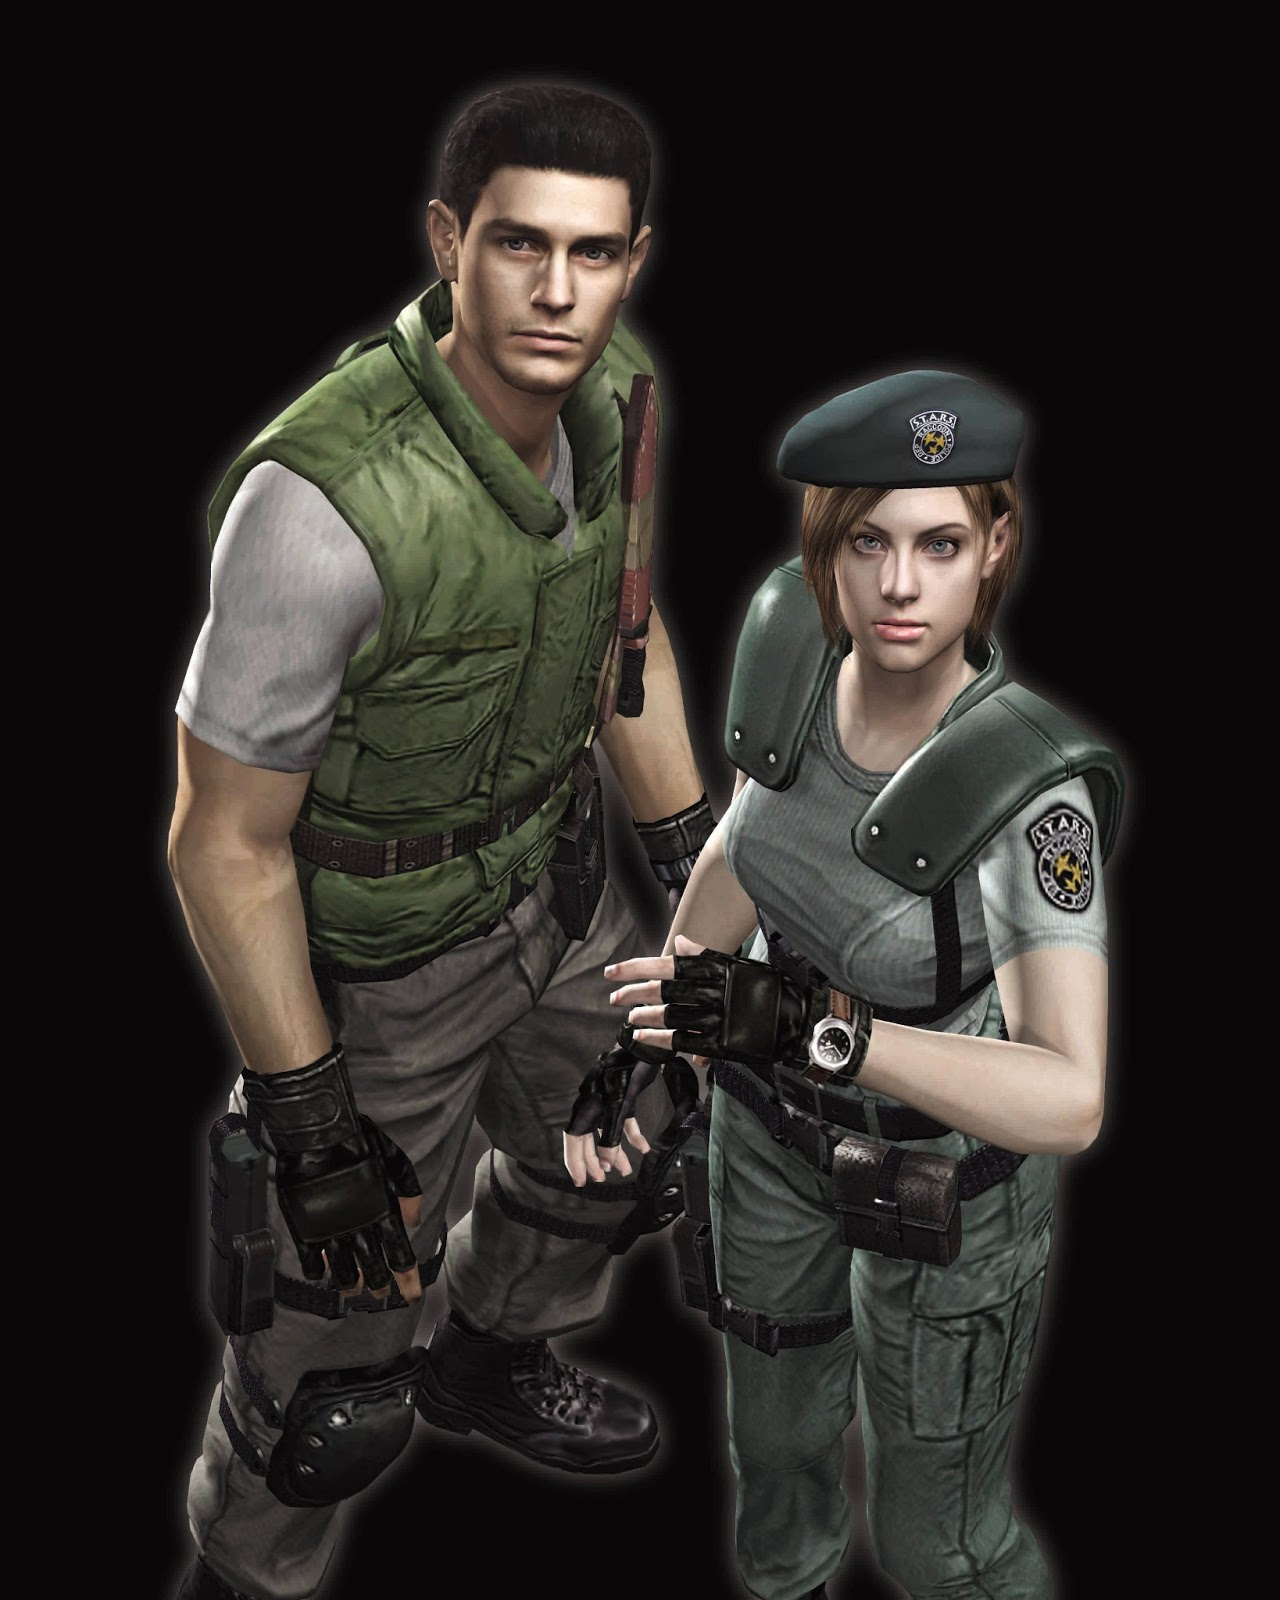 jill valentine and chris redfield relationship tips